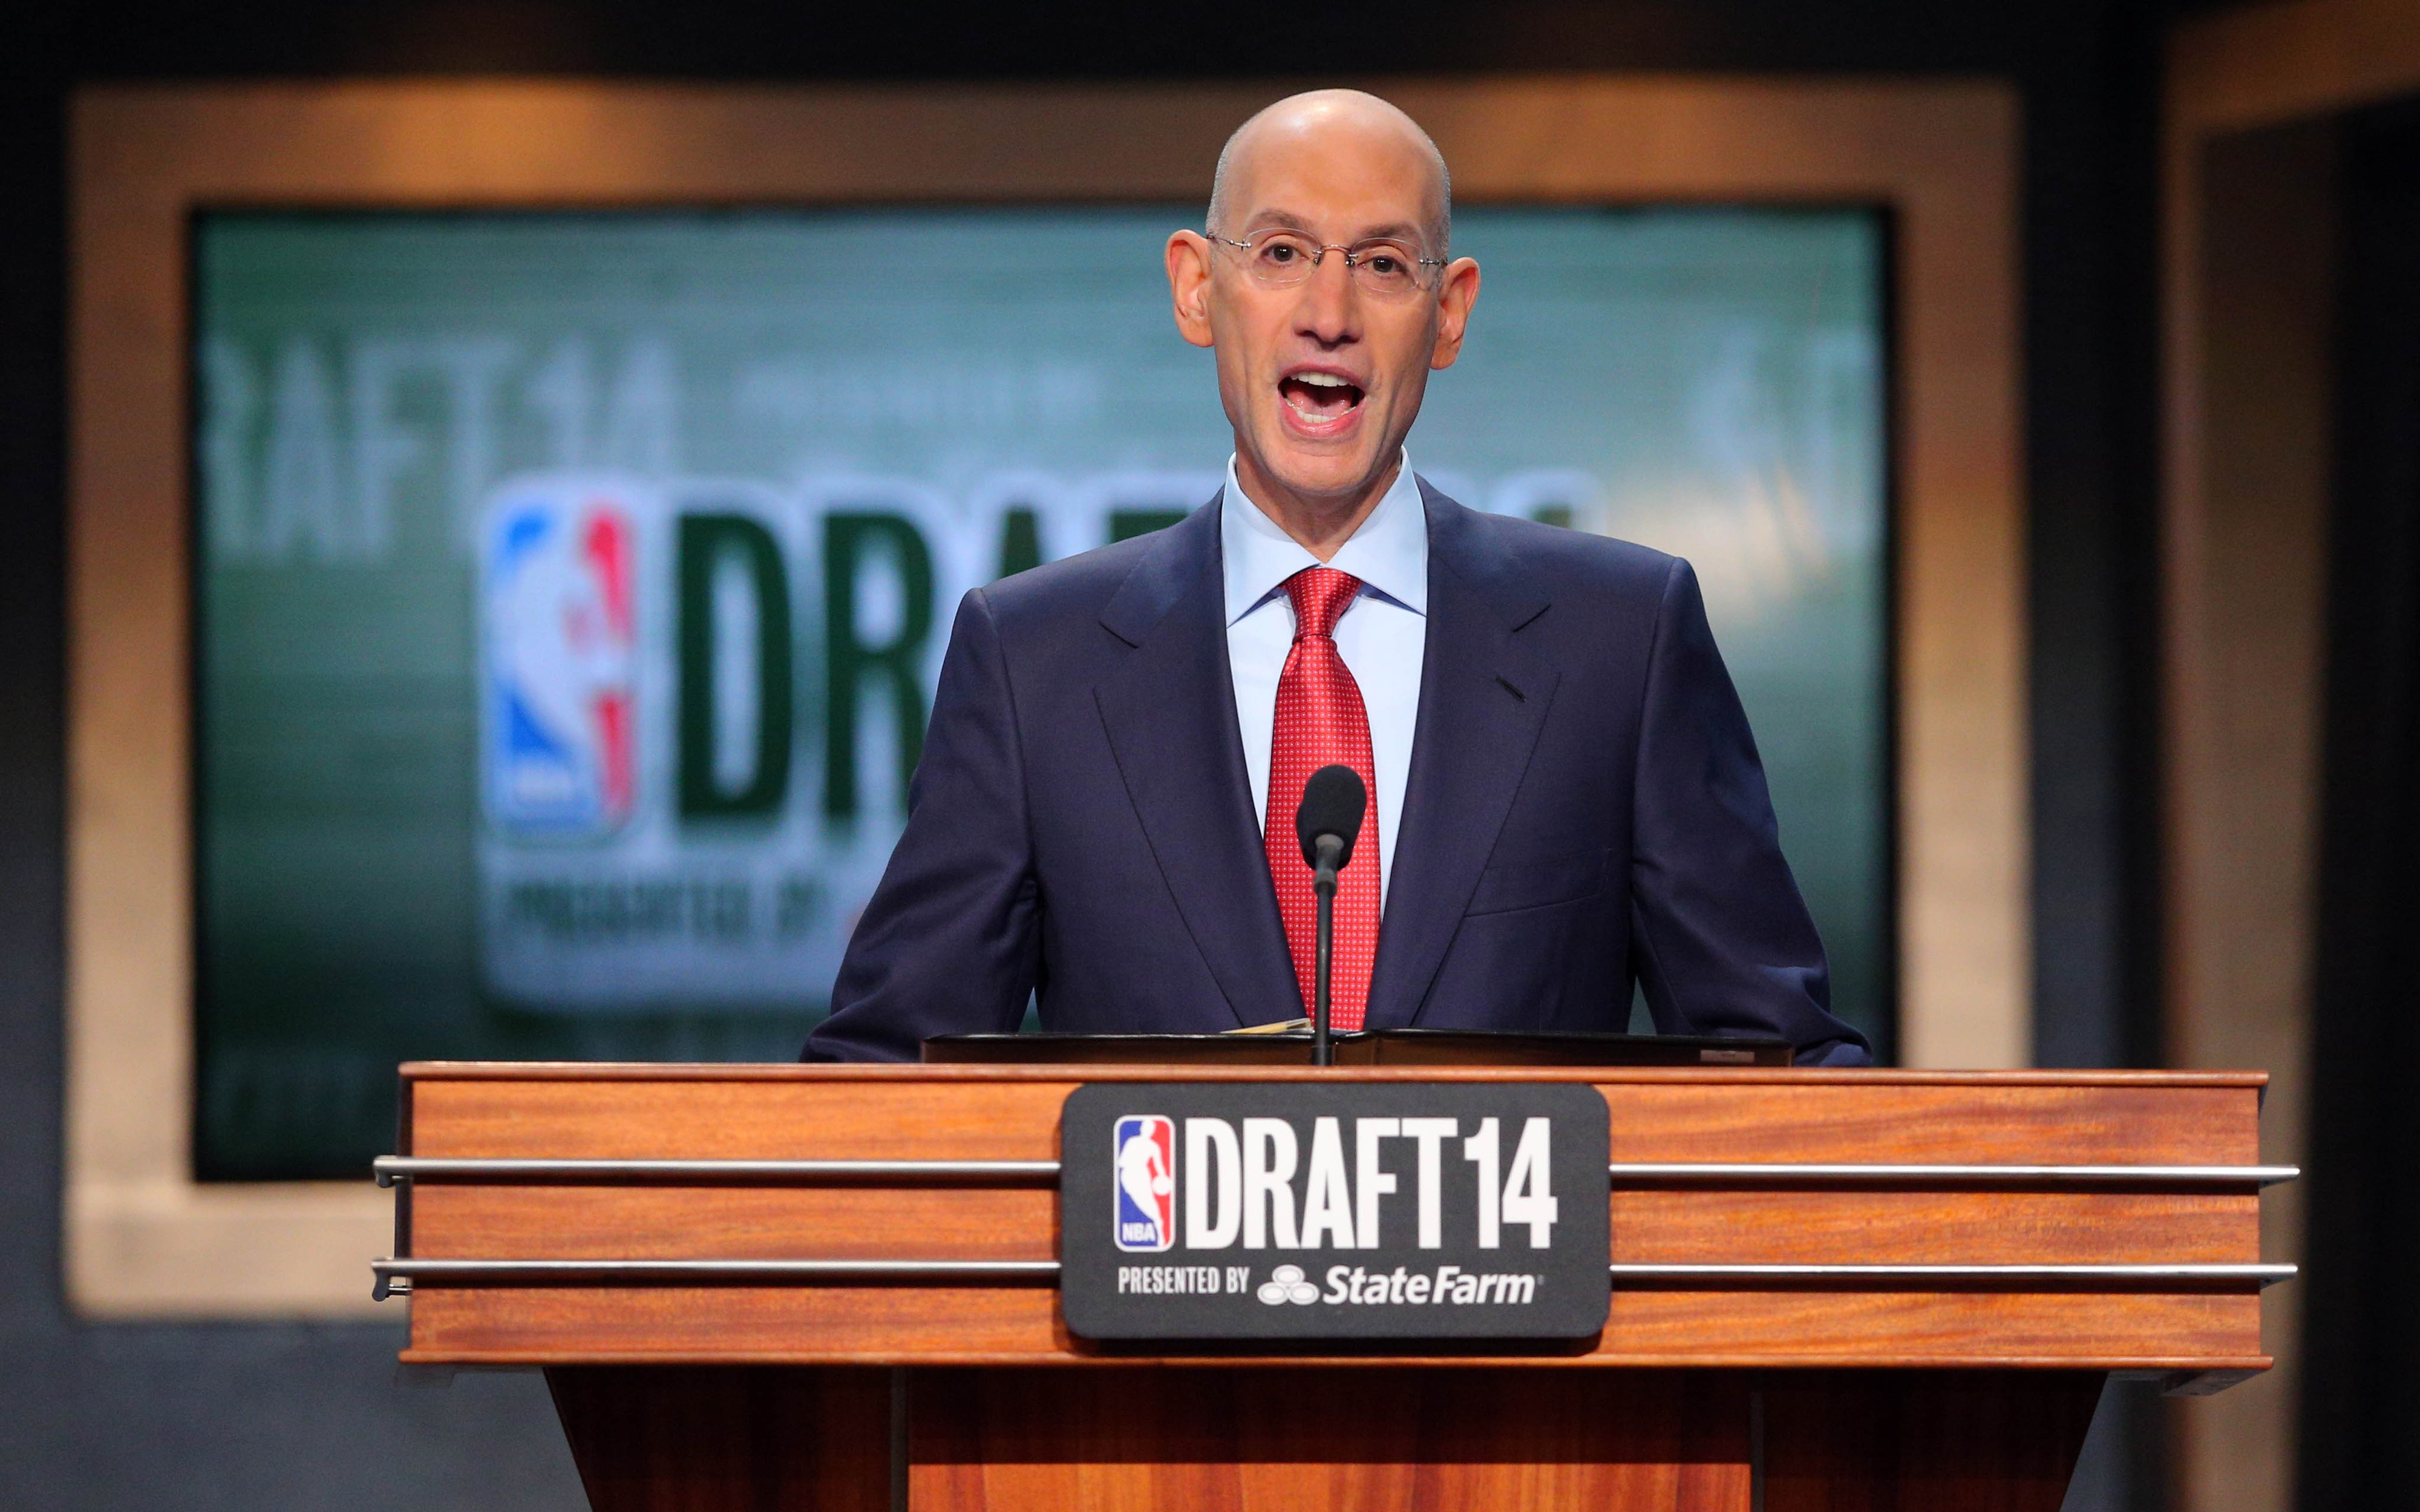 How the recent ruling against NCAA could help NBA raise age limit